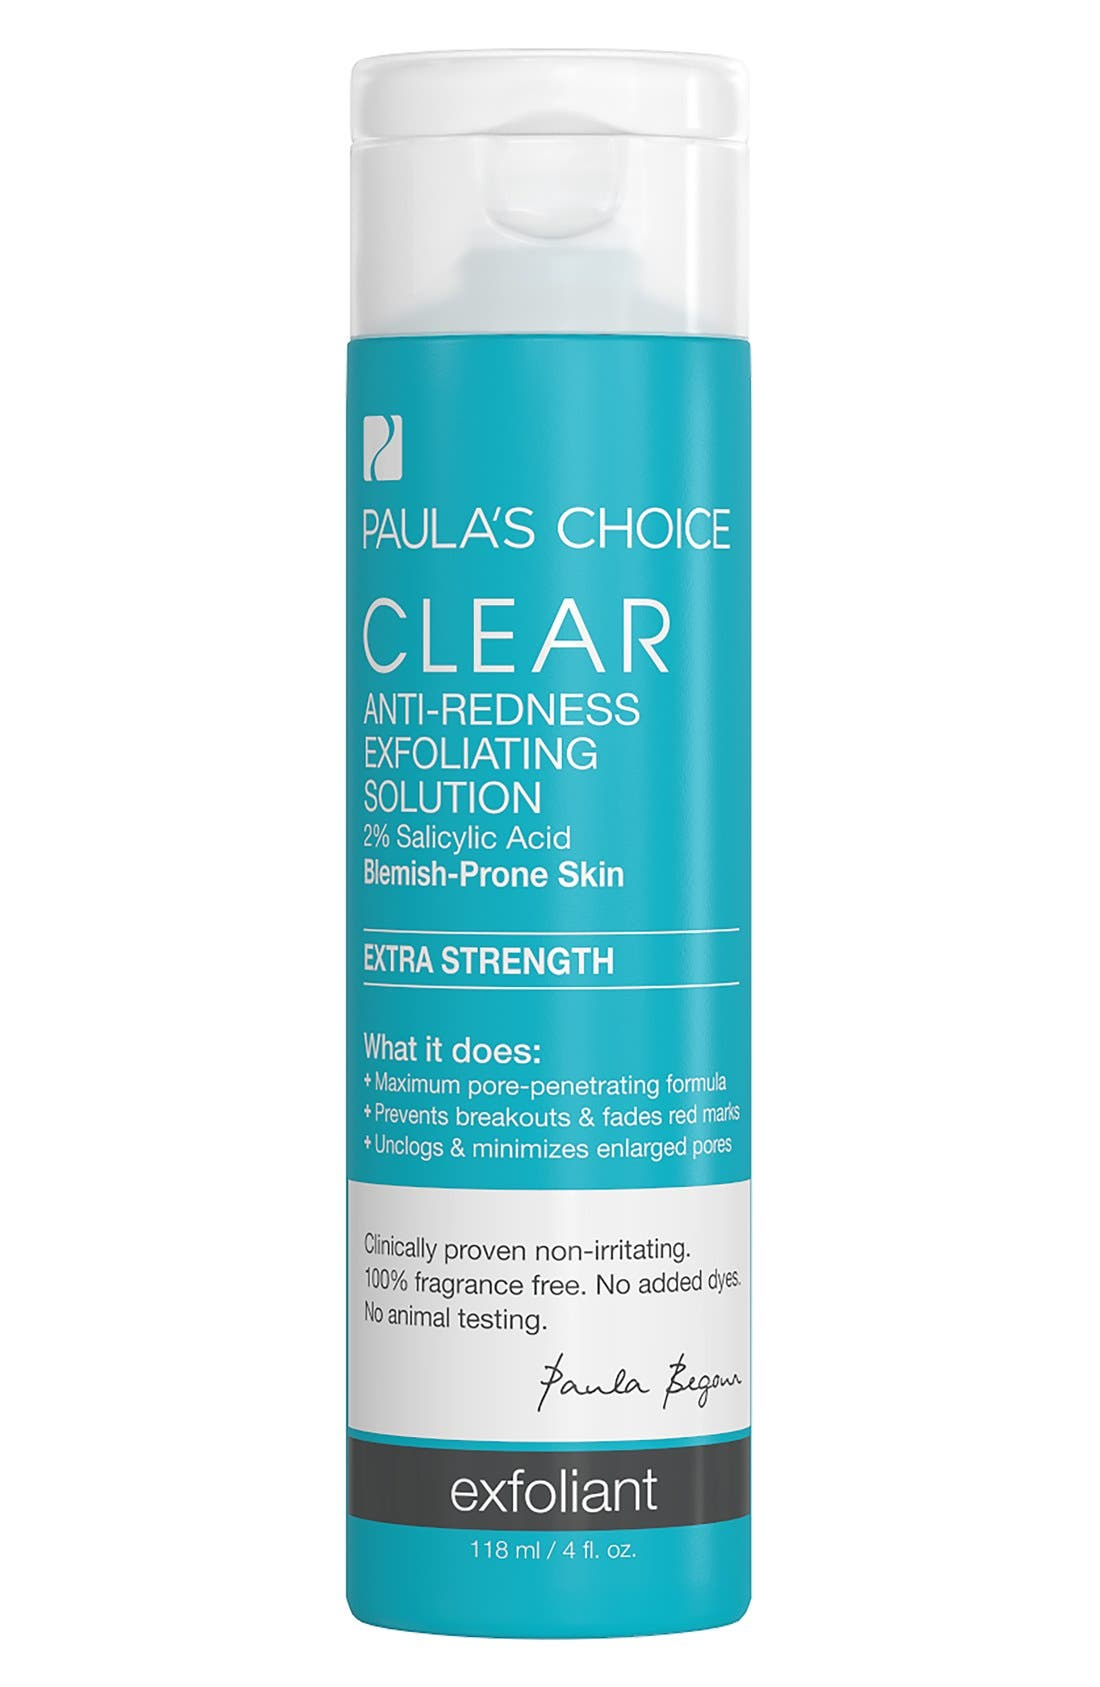 Paula's Choice Clear Extra Strength Anti-Redness Exfoliating Solution